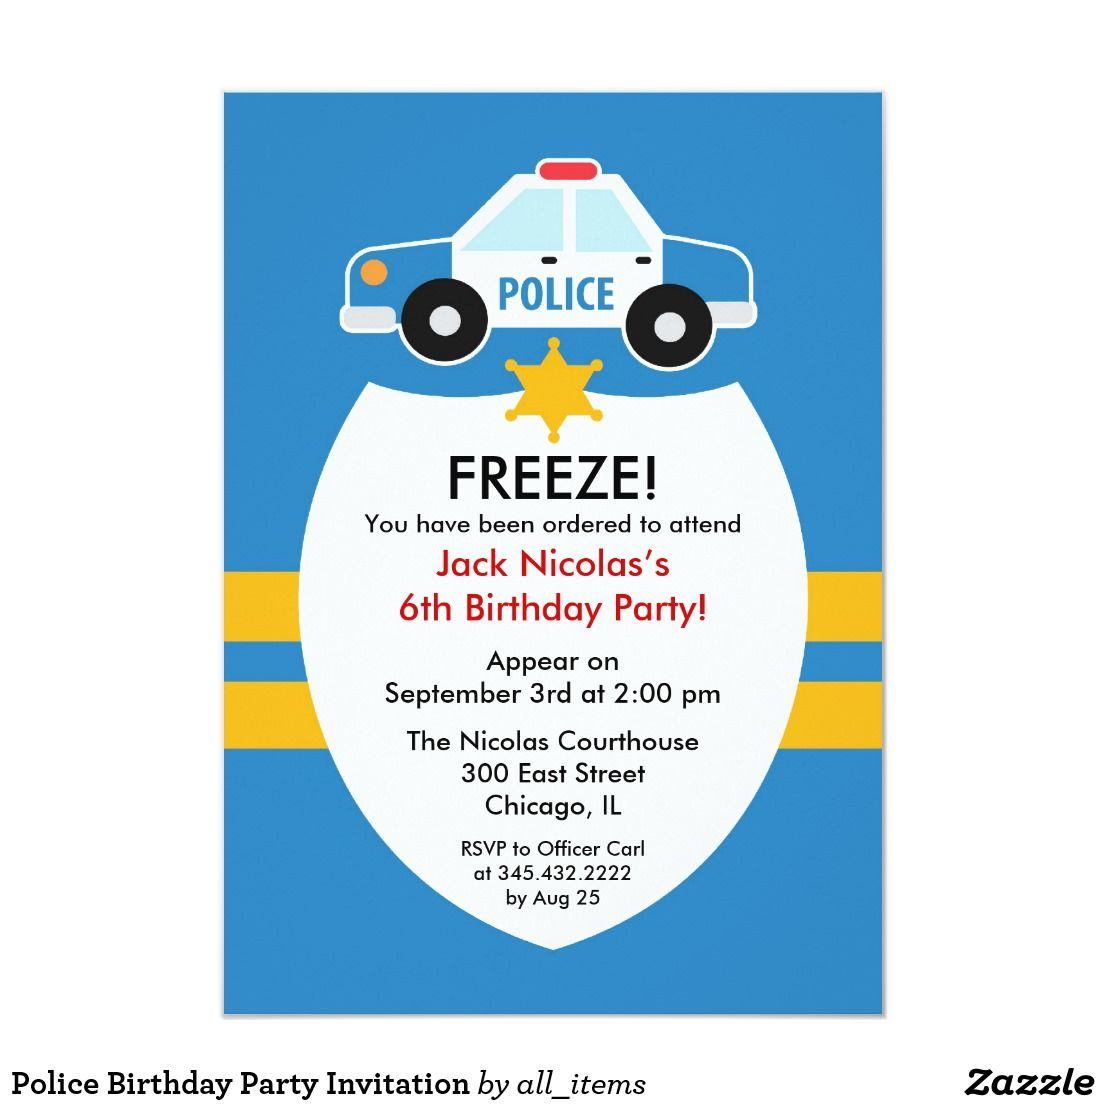 Police Birthday Party Invitation